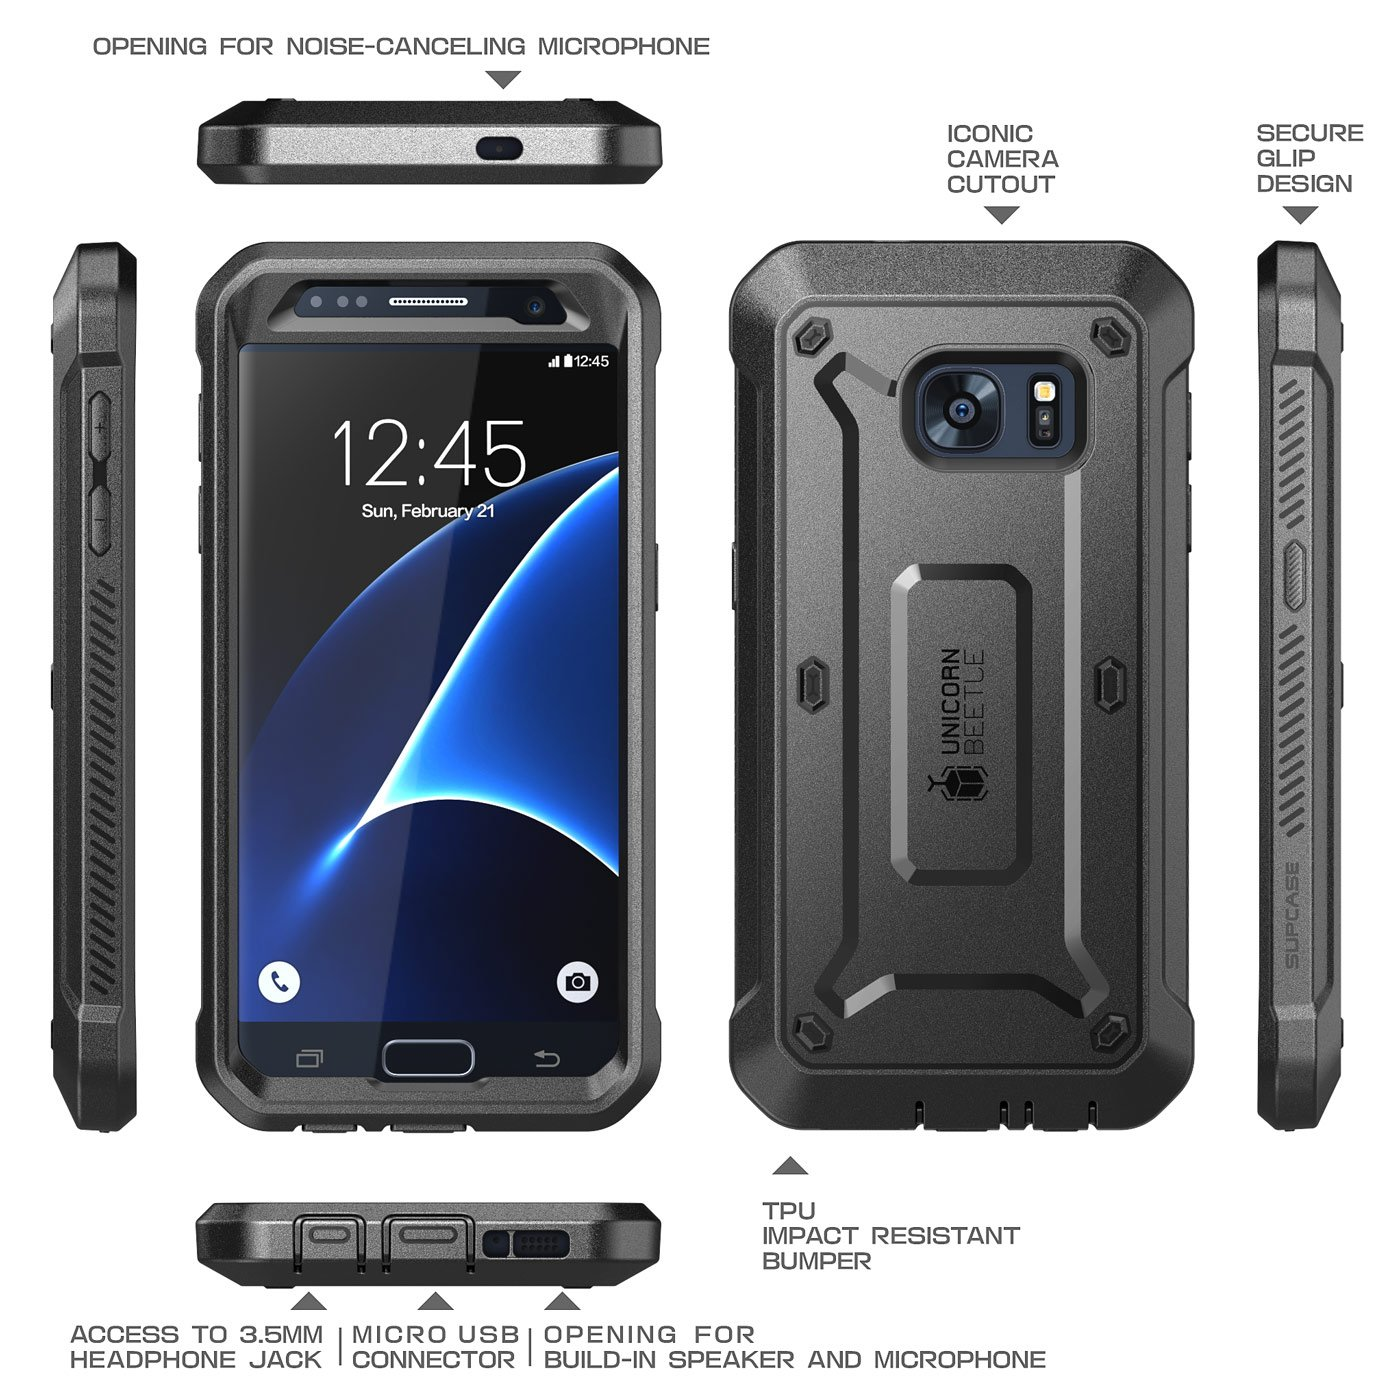 of neo duty rugged layer rug cases photos samsung galaxy proof dual rubber home images heavy case shock inspirational cover impact phone lovely